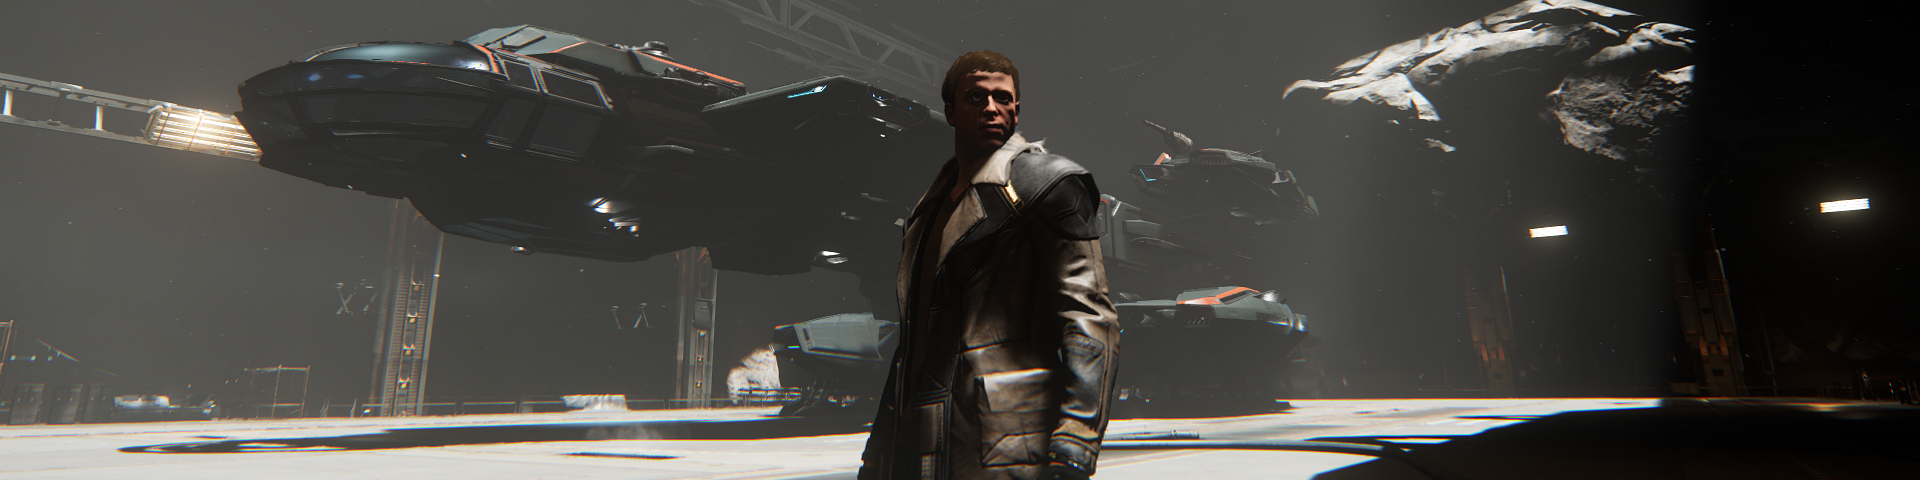 A man standing in front of a landed space cutter.